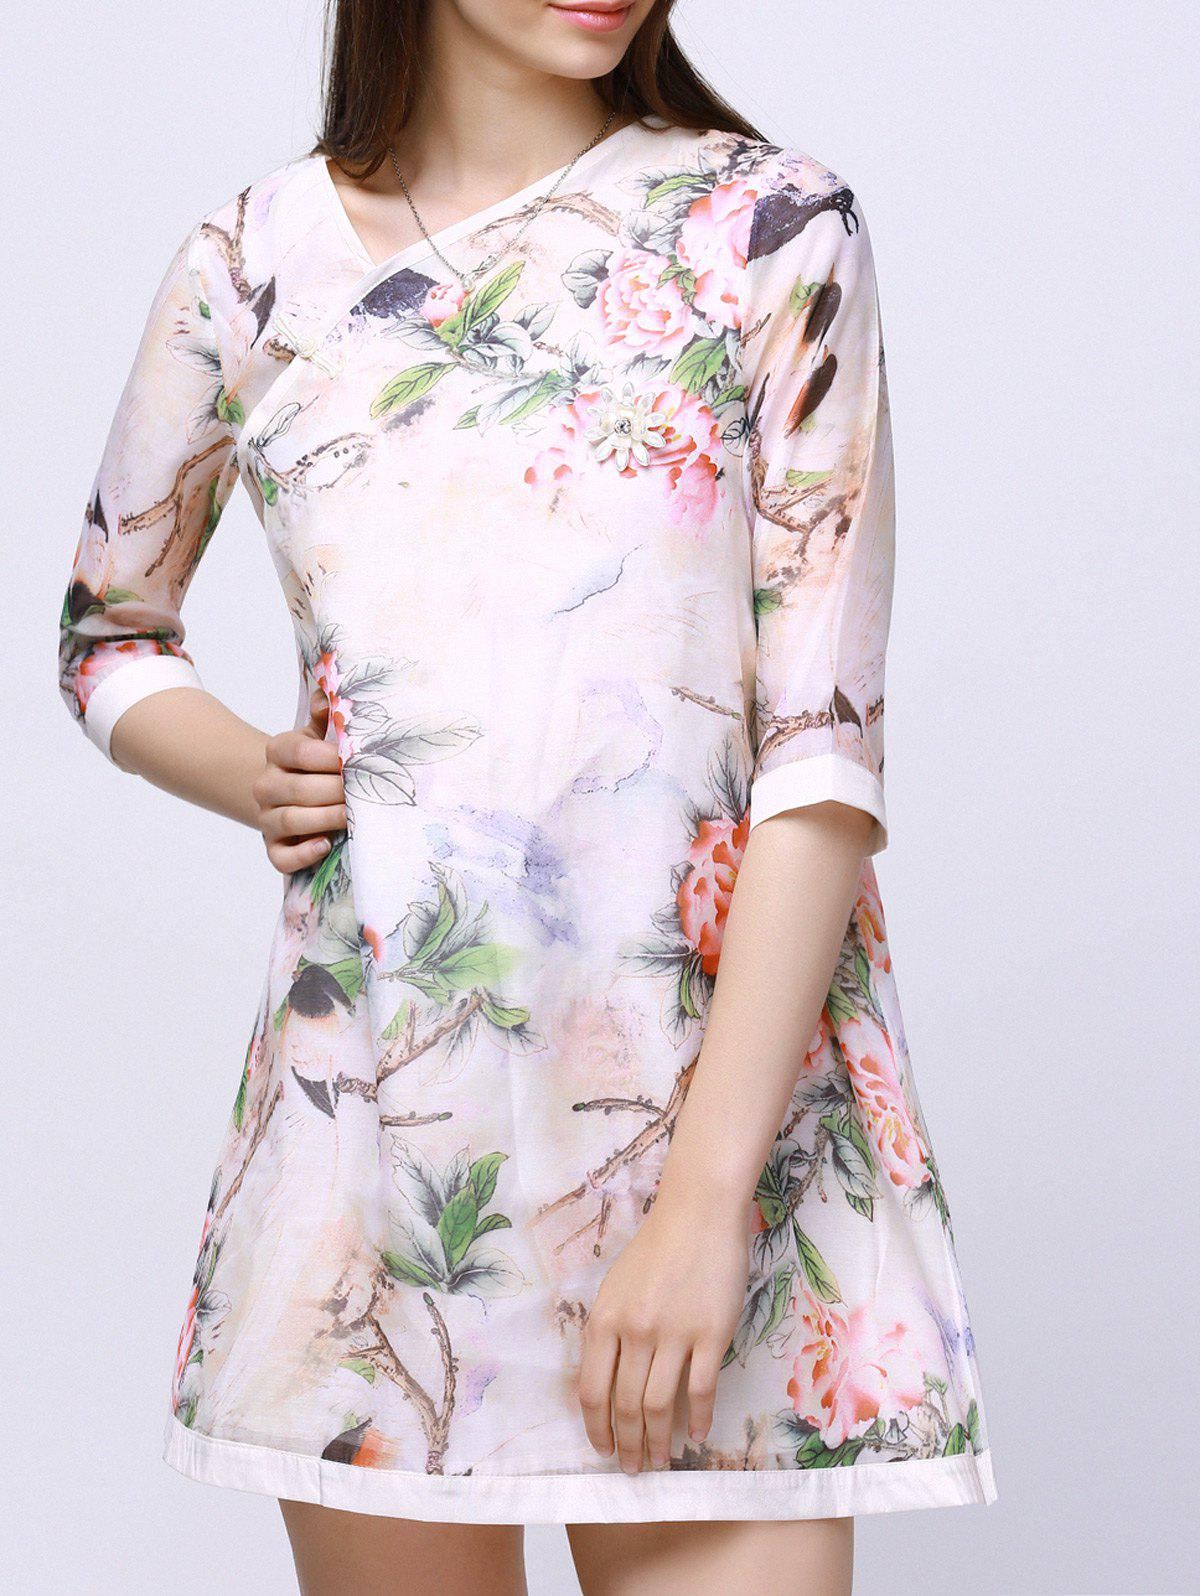 Bird Floral Print Gauze Dress - OFF WHITE XL